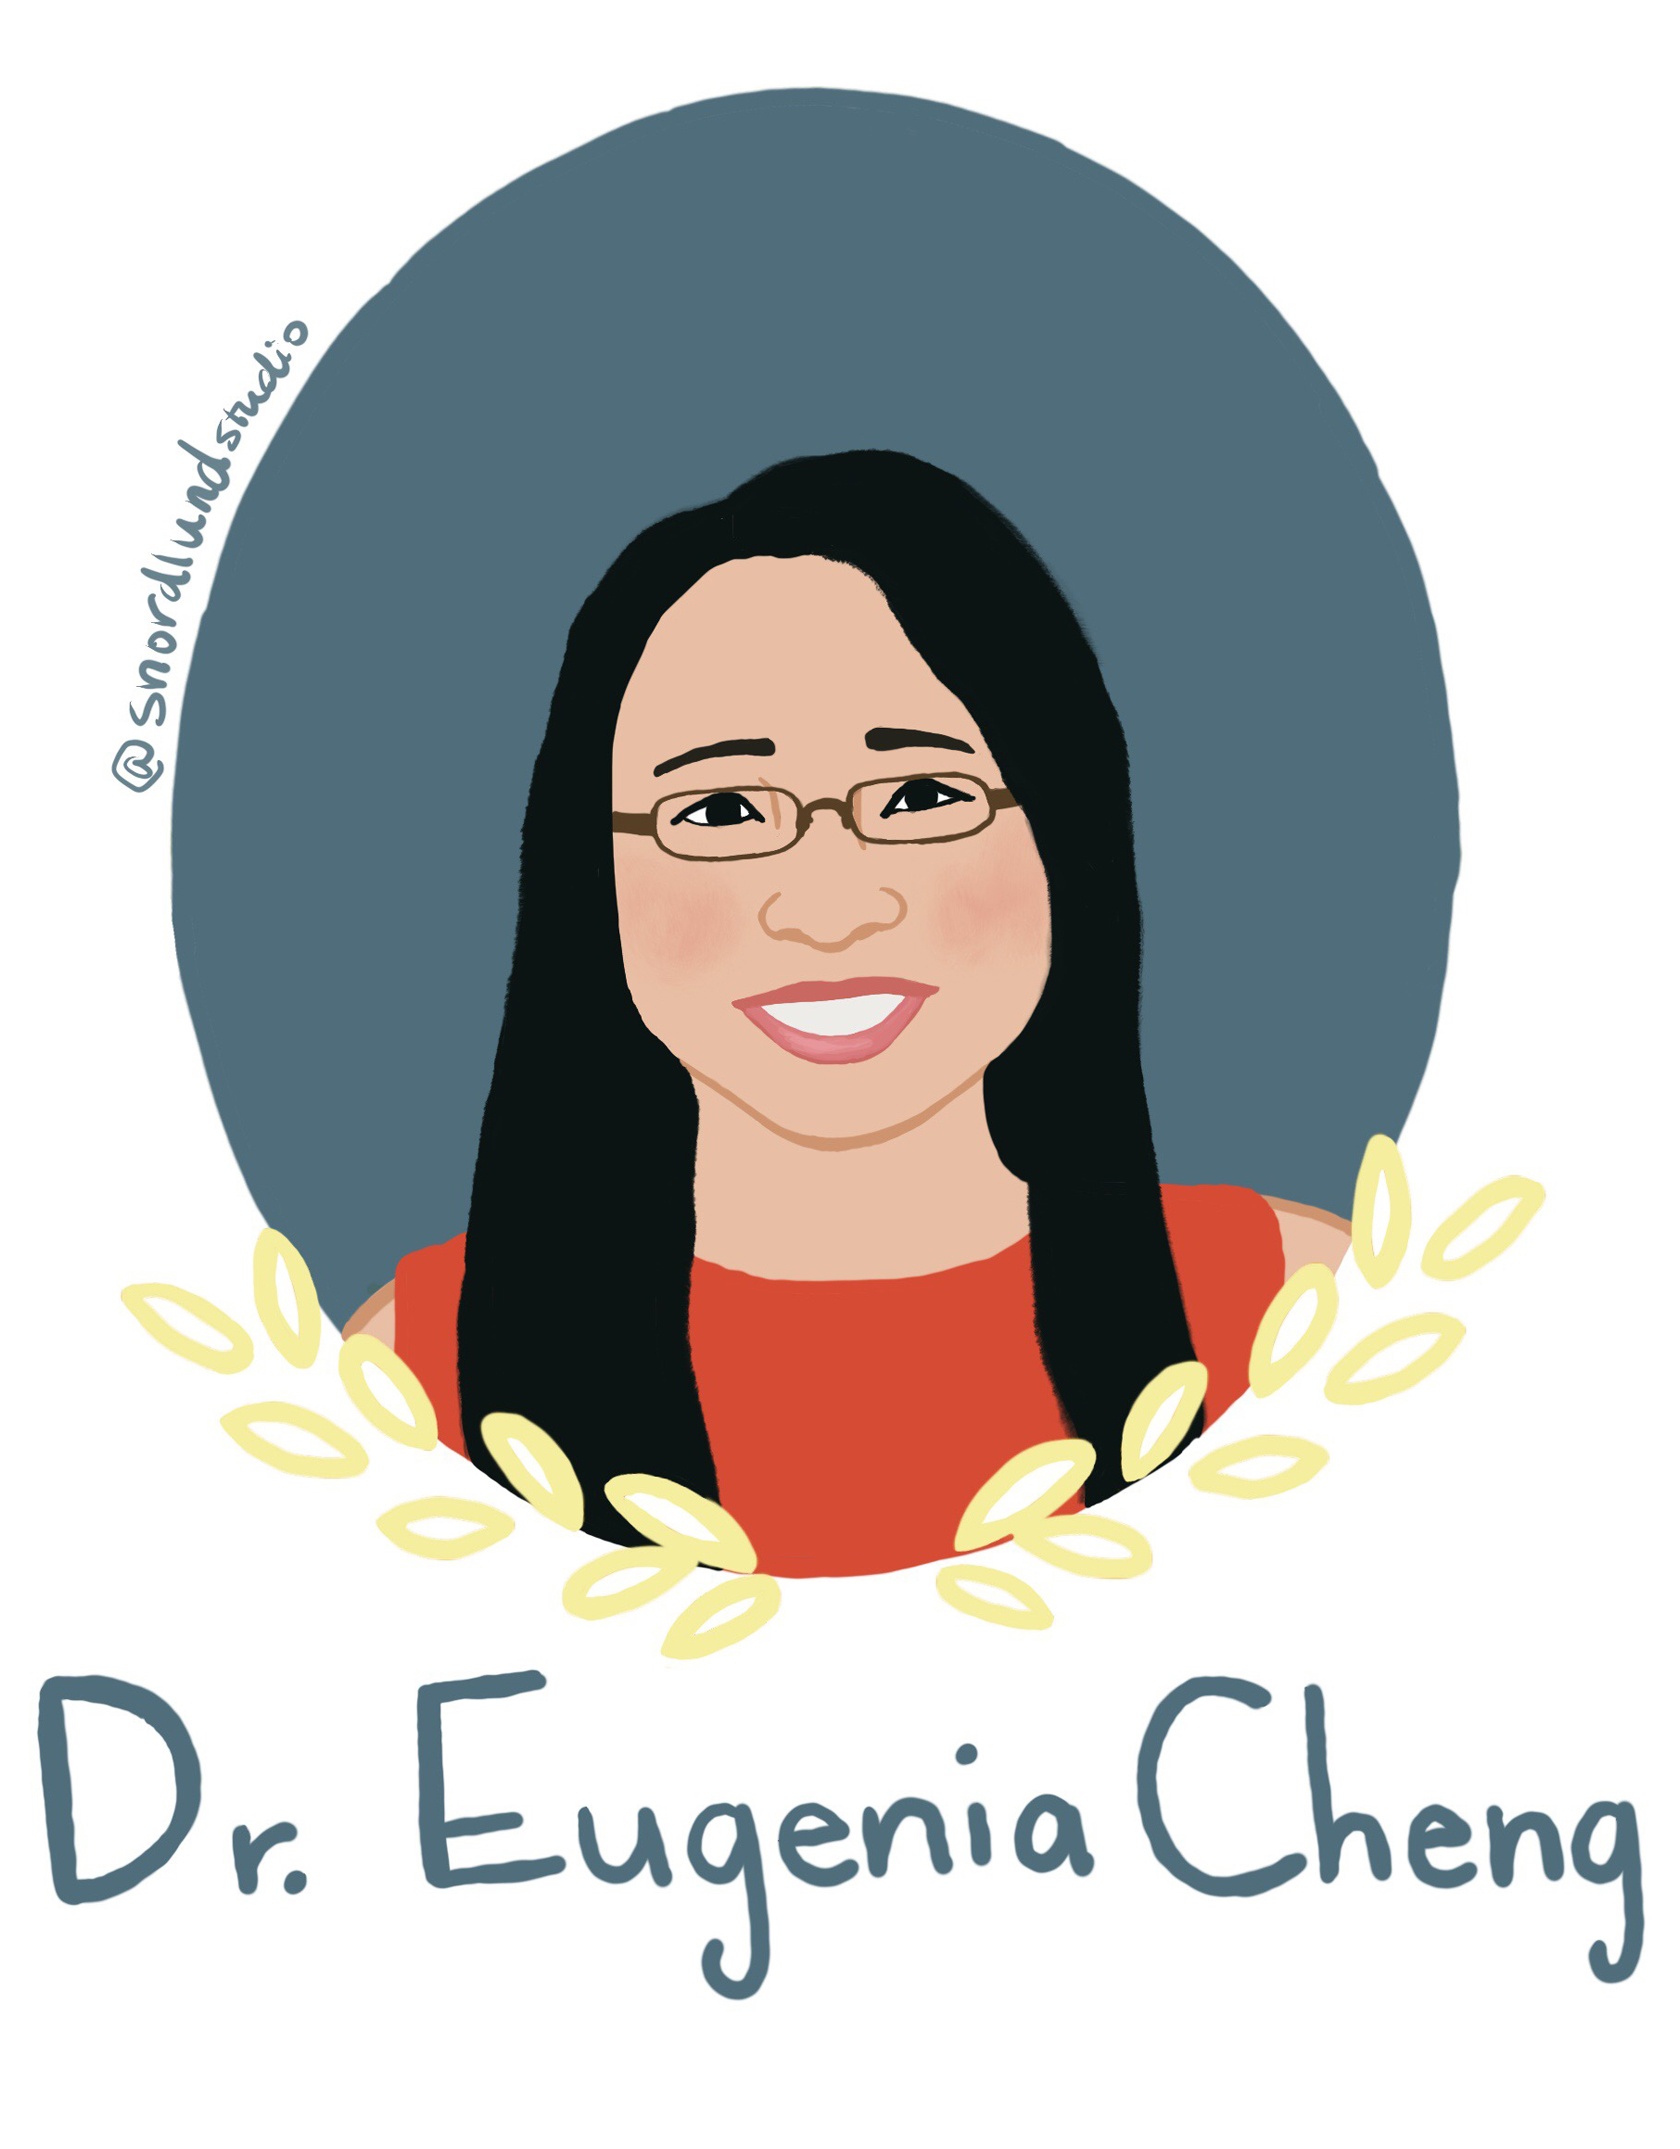 3. Dr. Eugenia Cheng - Dr. Eugenia Cheng is a mathematician, pianist, and currently a Scientist-in-Residence at the Art Institute of Chicago. Cheng also wrote the book, How to Bake Pi, which connects math and baking as a way of learning mathematic principles and methods.